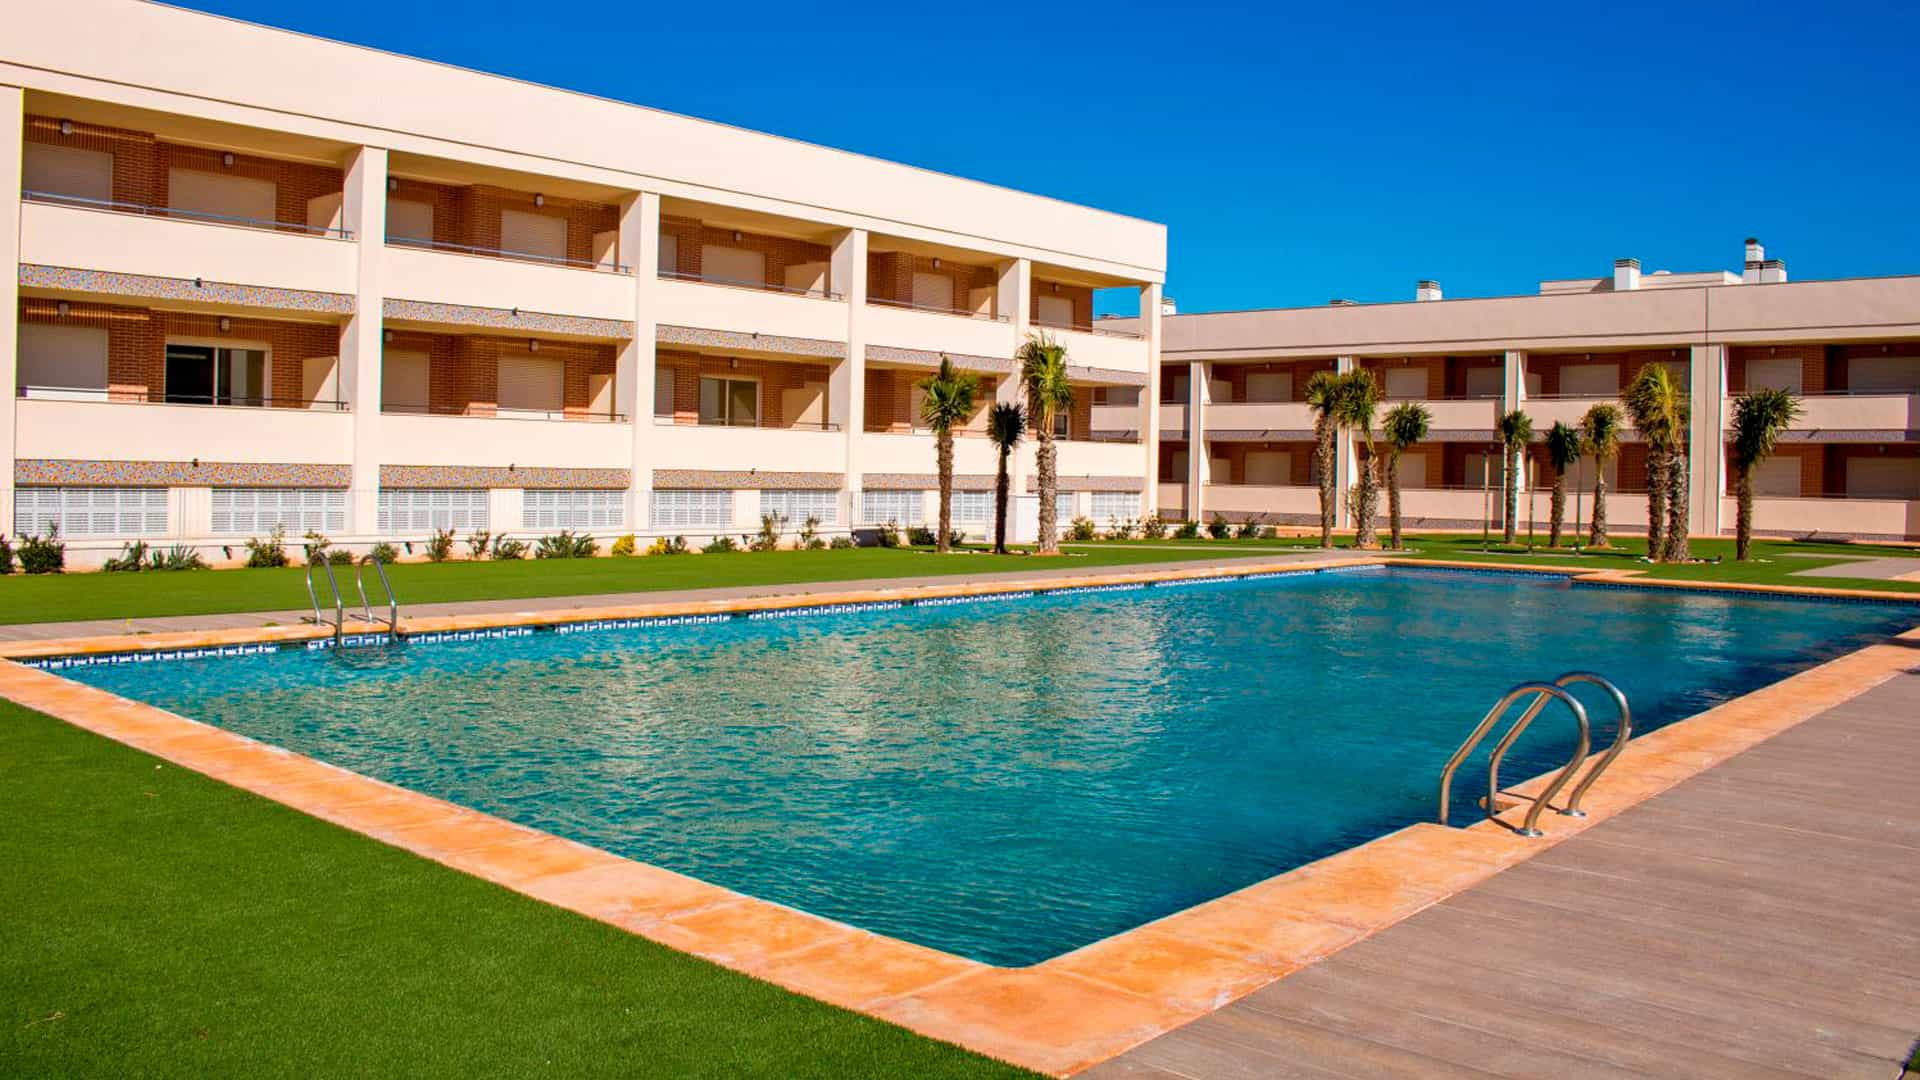 Appartement te koop in Gran Alacant (Spanje, Costa Blanca)